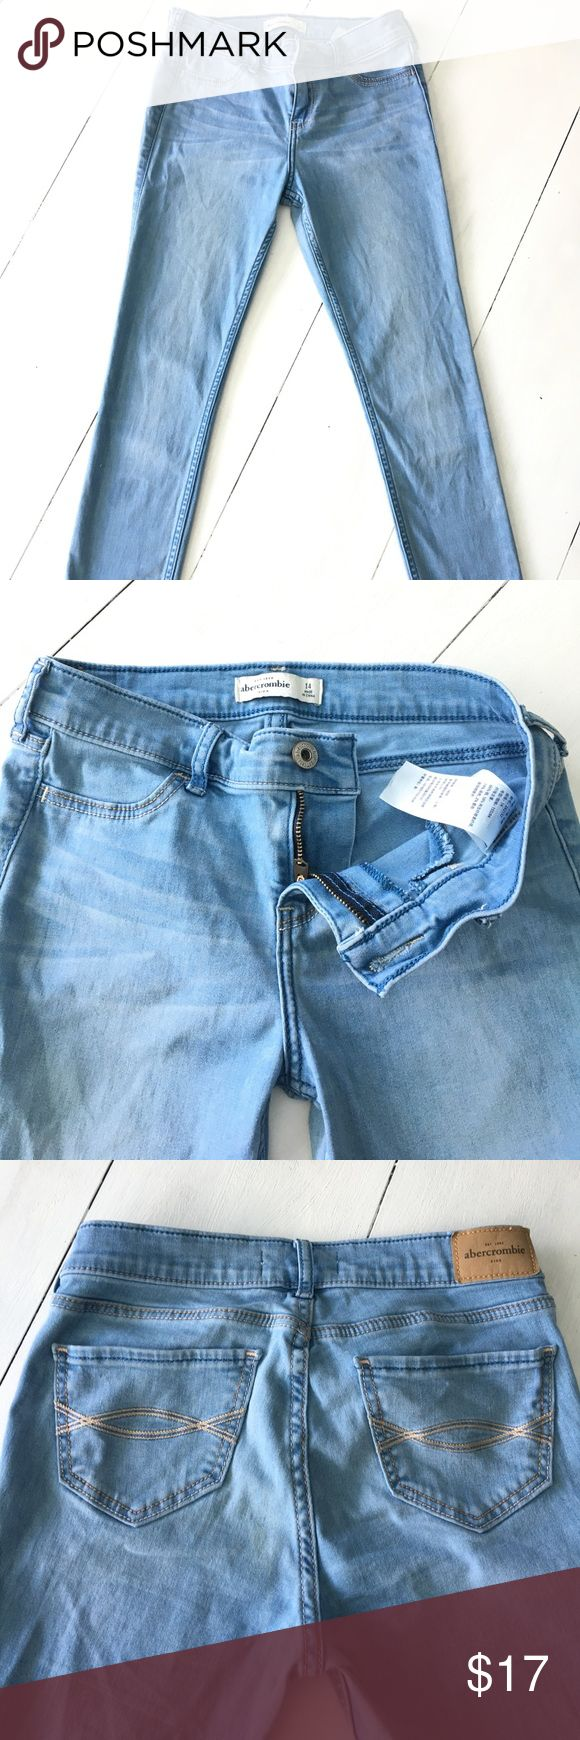 Abercrombie Girls sz 14 skinny Jegging Jeans EUC Abercrombie Girls size 14 skinny jeggings. These jeans have a lot of stretch and are very comfy. They are a light blue wash. abercrombie kids Bottoms Jeans